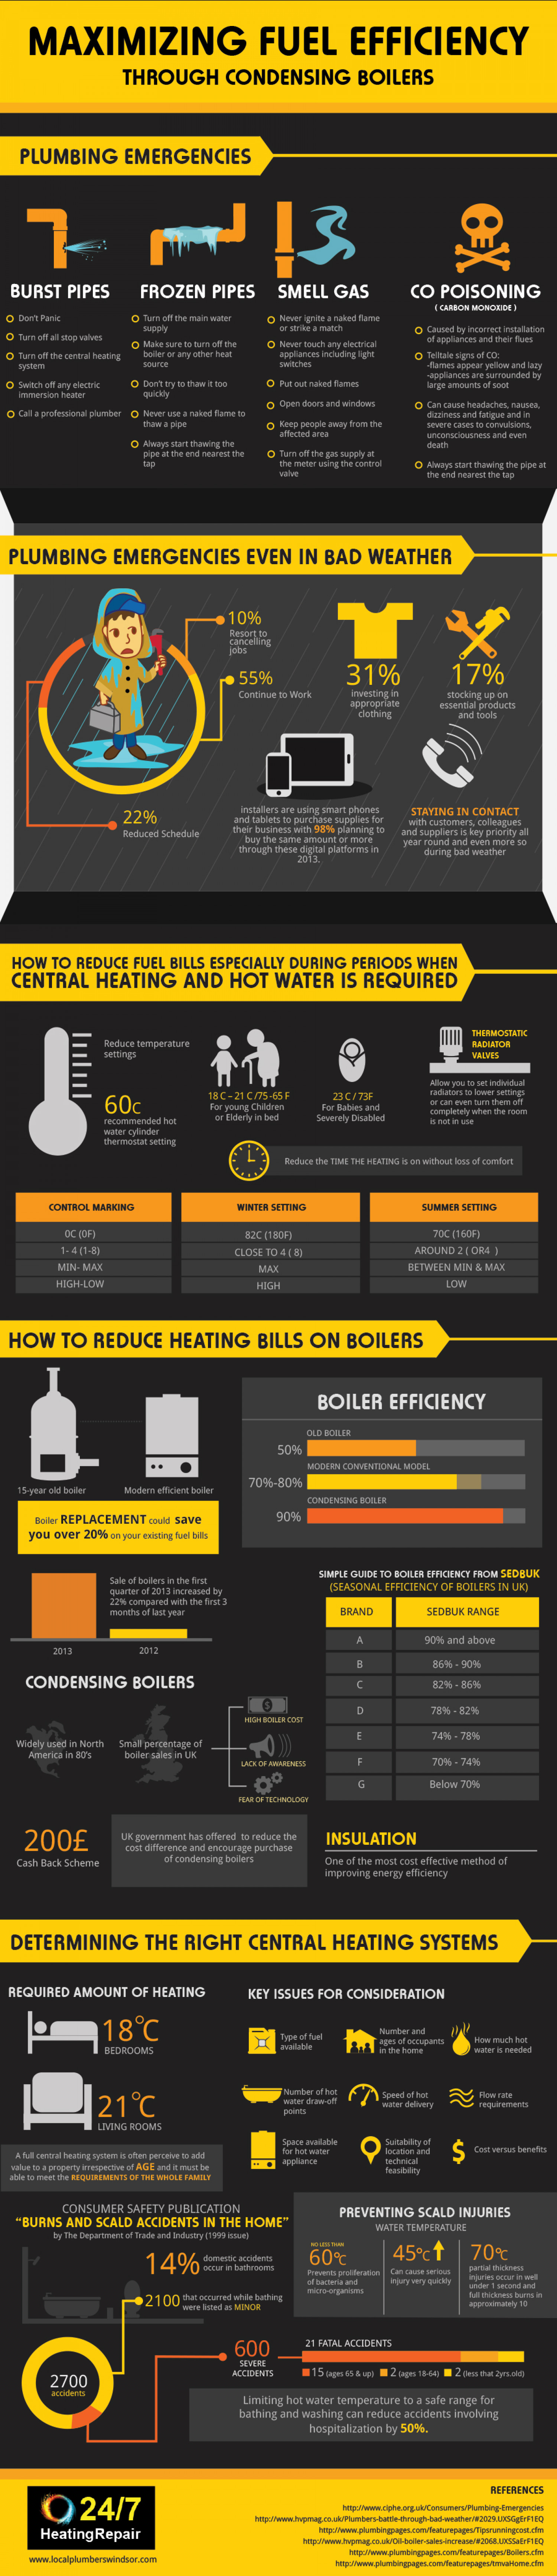 Maximizing Fuel Efficiency through Condensing Boilers Infographic